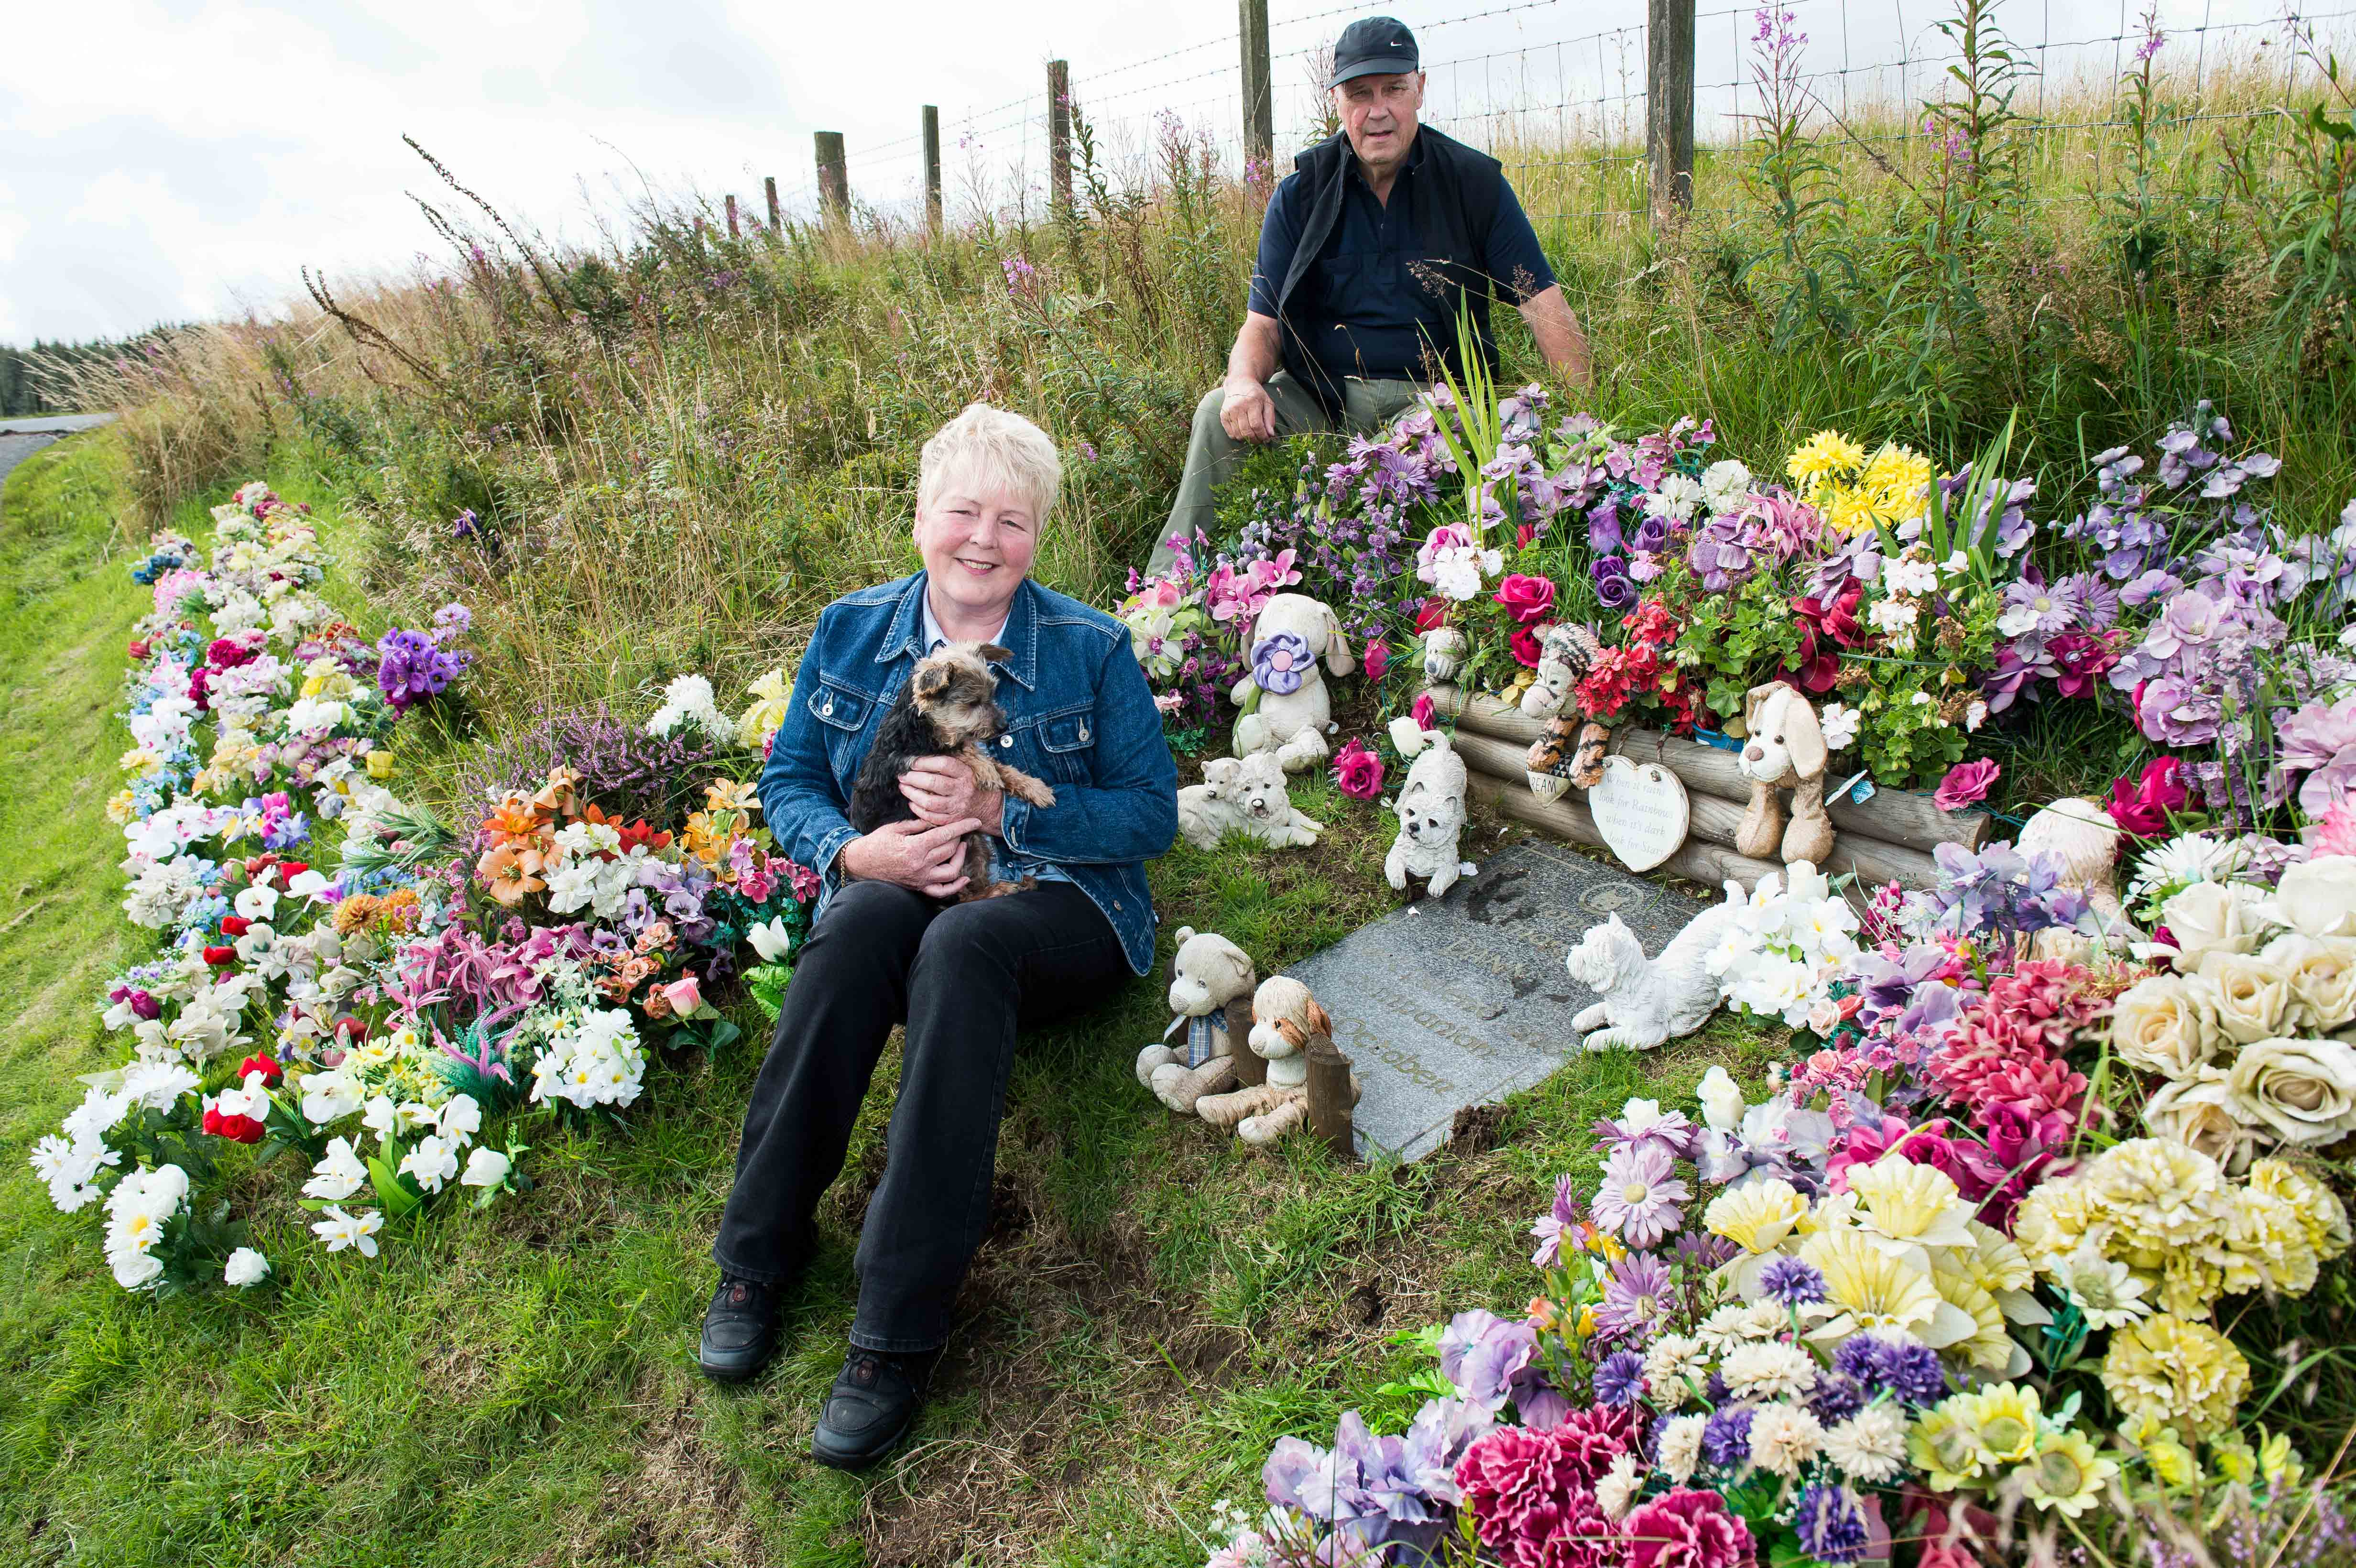 Moira Campbell and her dog, Rusty, with William Robertson, who tends to the grass and flowers at the roadside grave of 'Danny' near Loch Glow